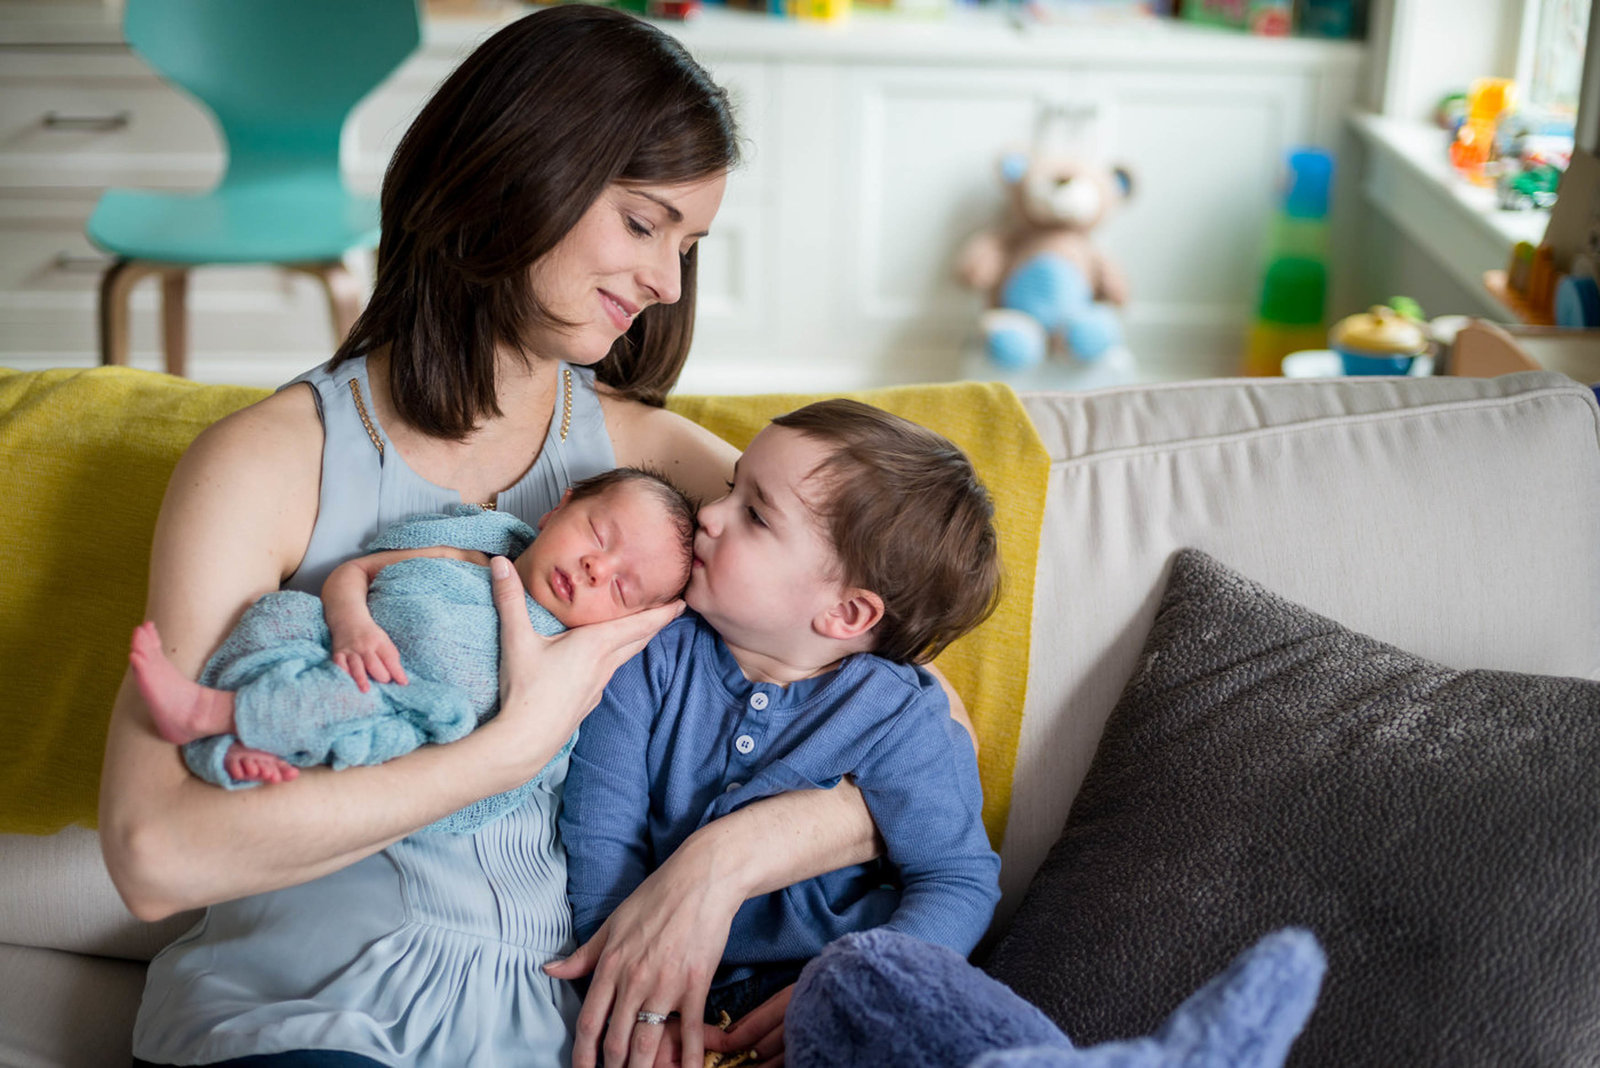 Brother kissing newborn head with mom holding baby at home lifestyle session